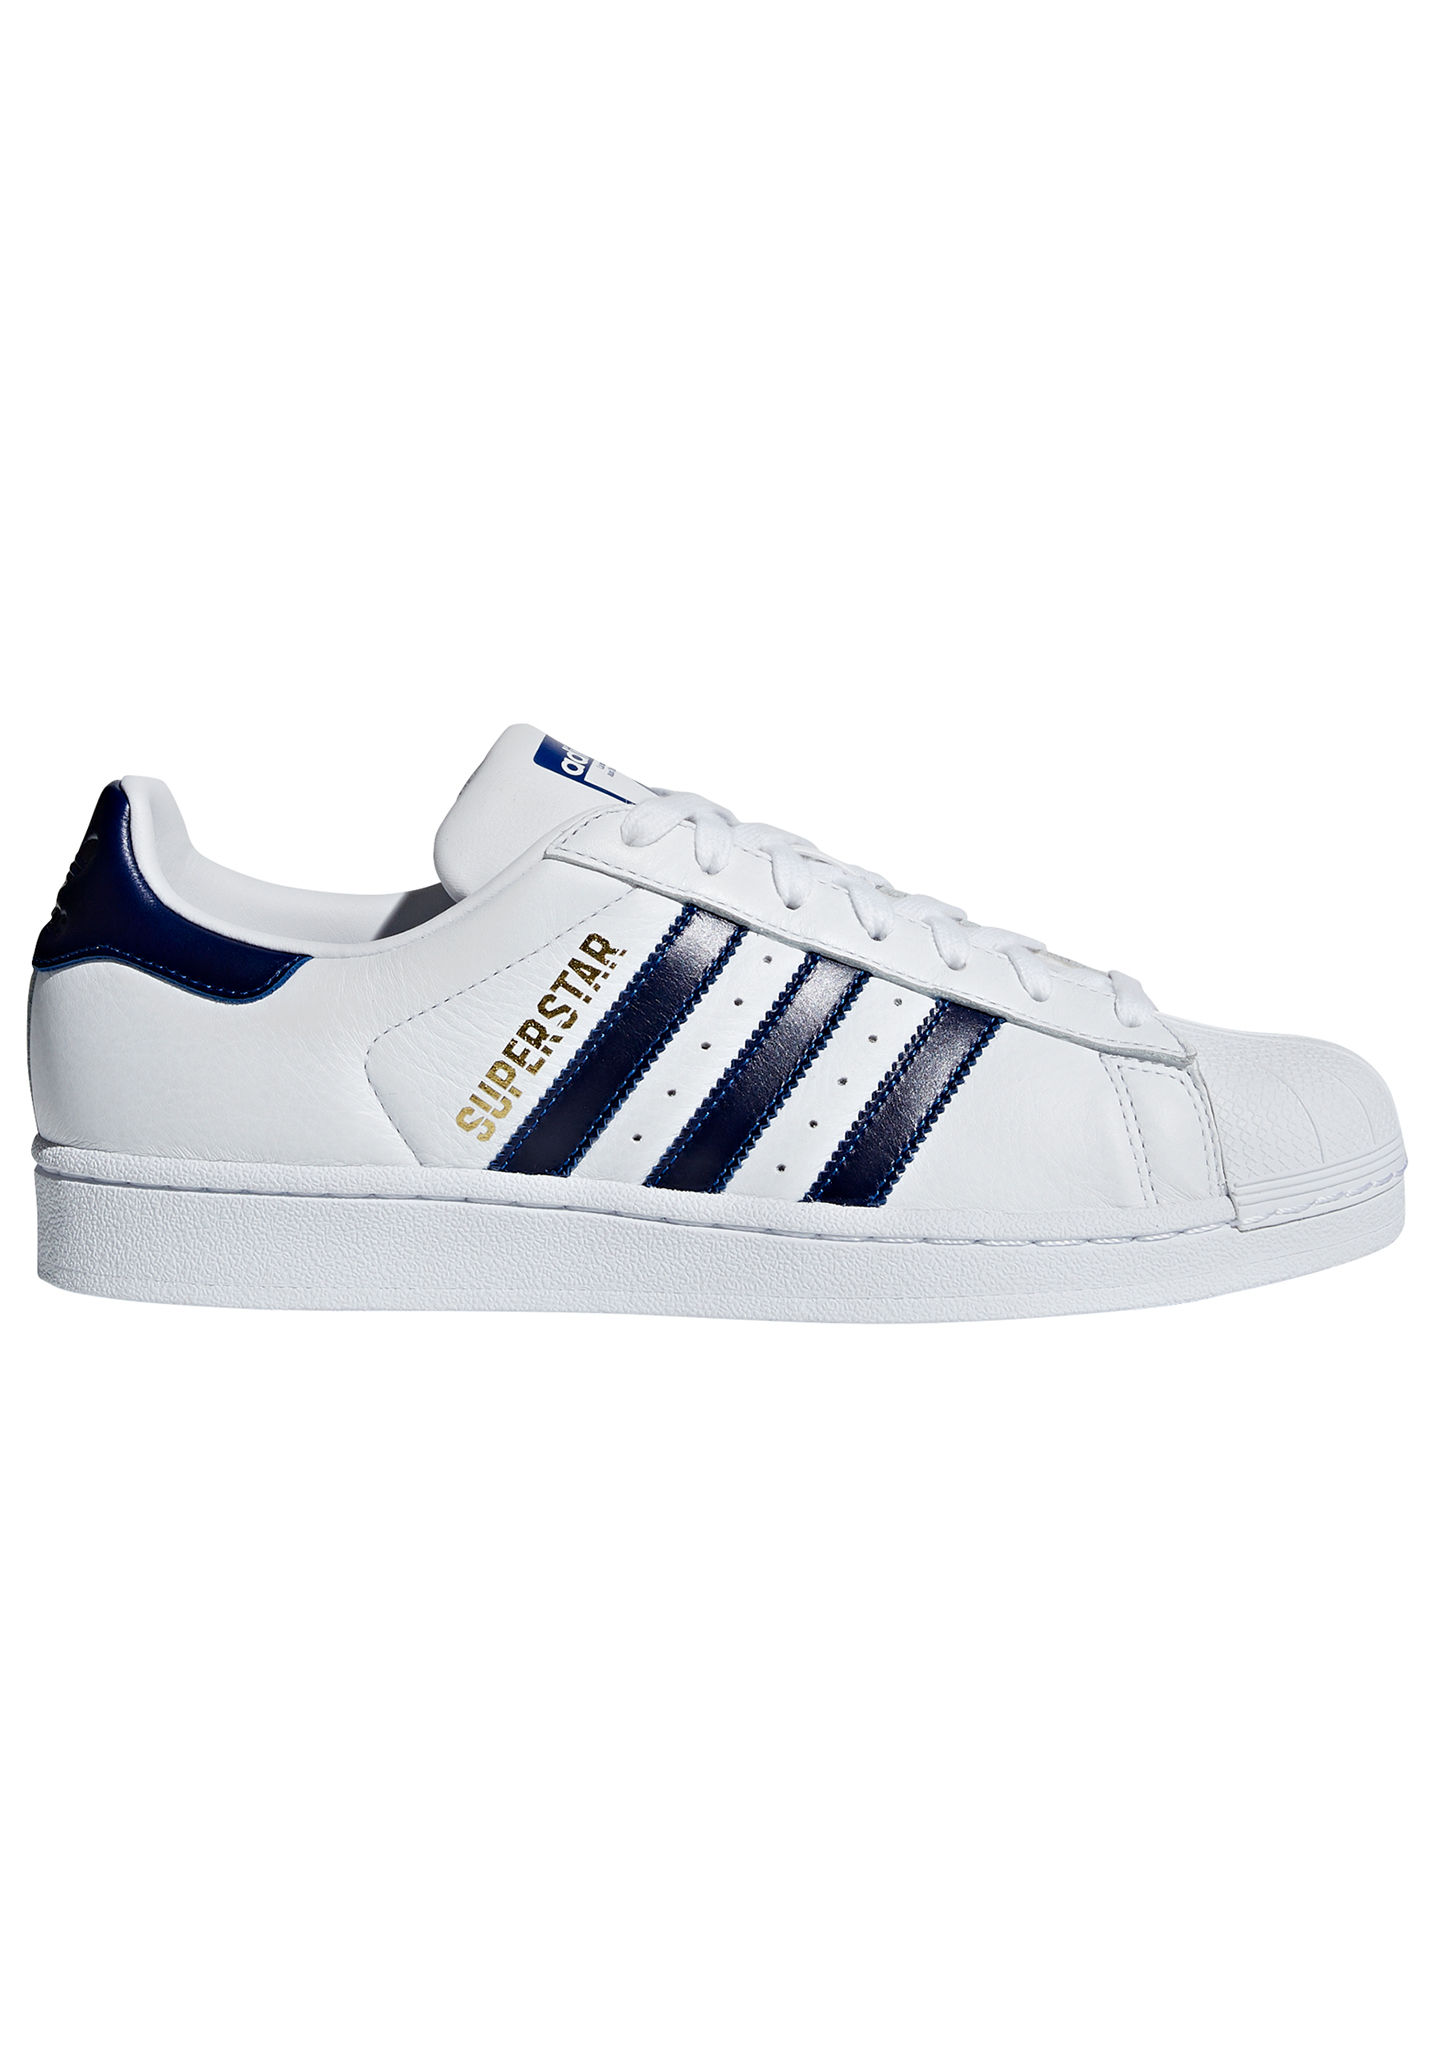 promo code 4cac1 9348b ADIDAS ORIGINALS Superstar - Sneakers for Men - White - Planet Sports